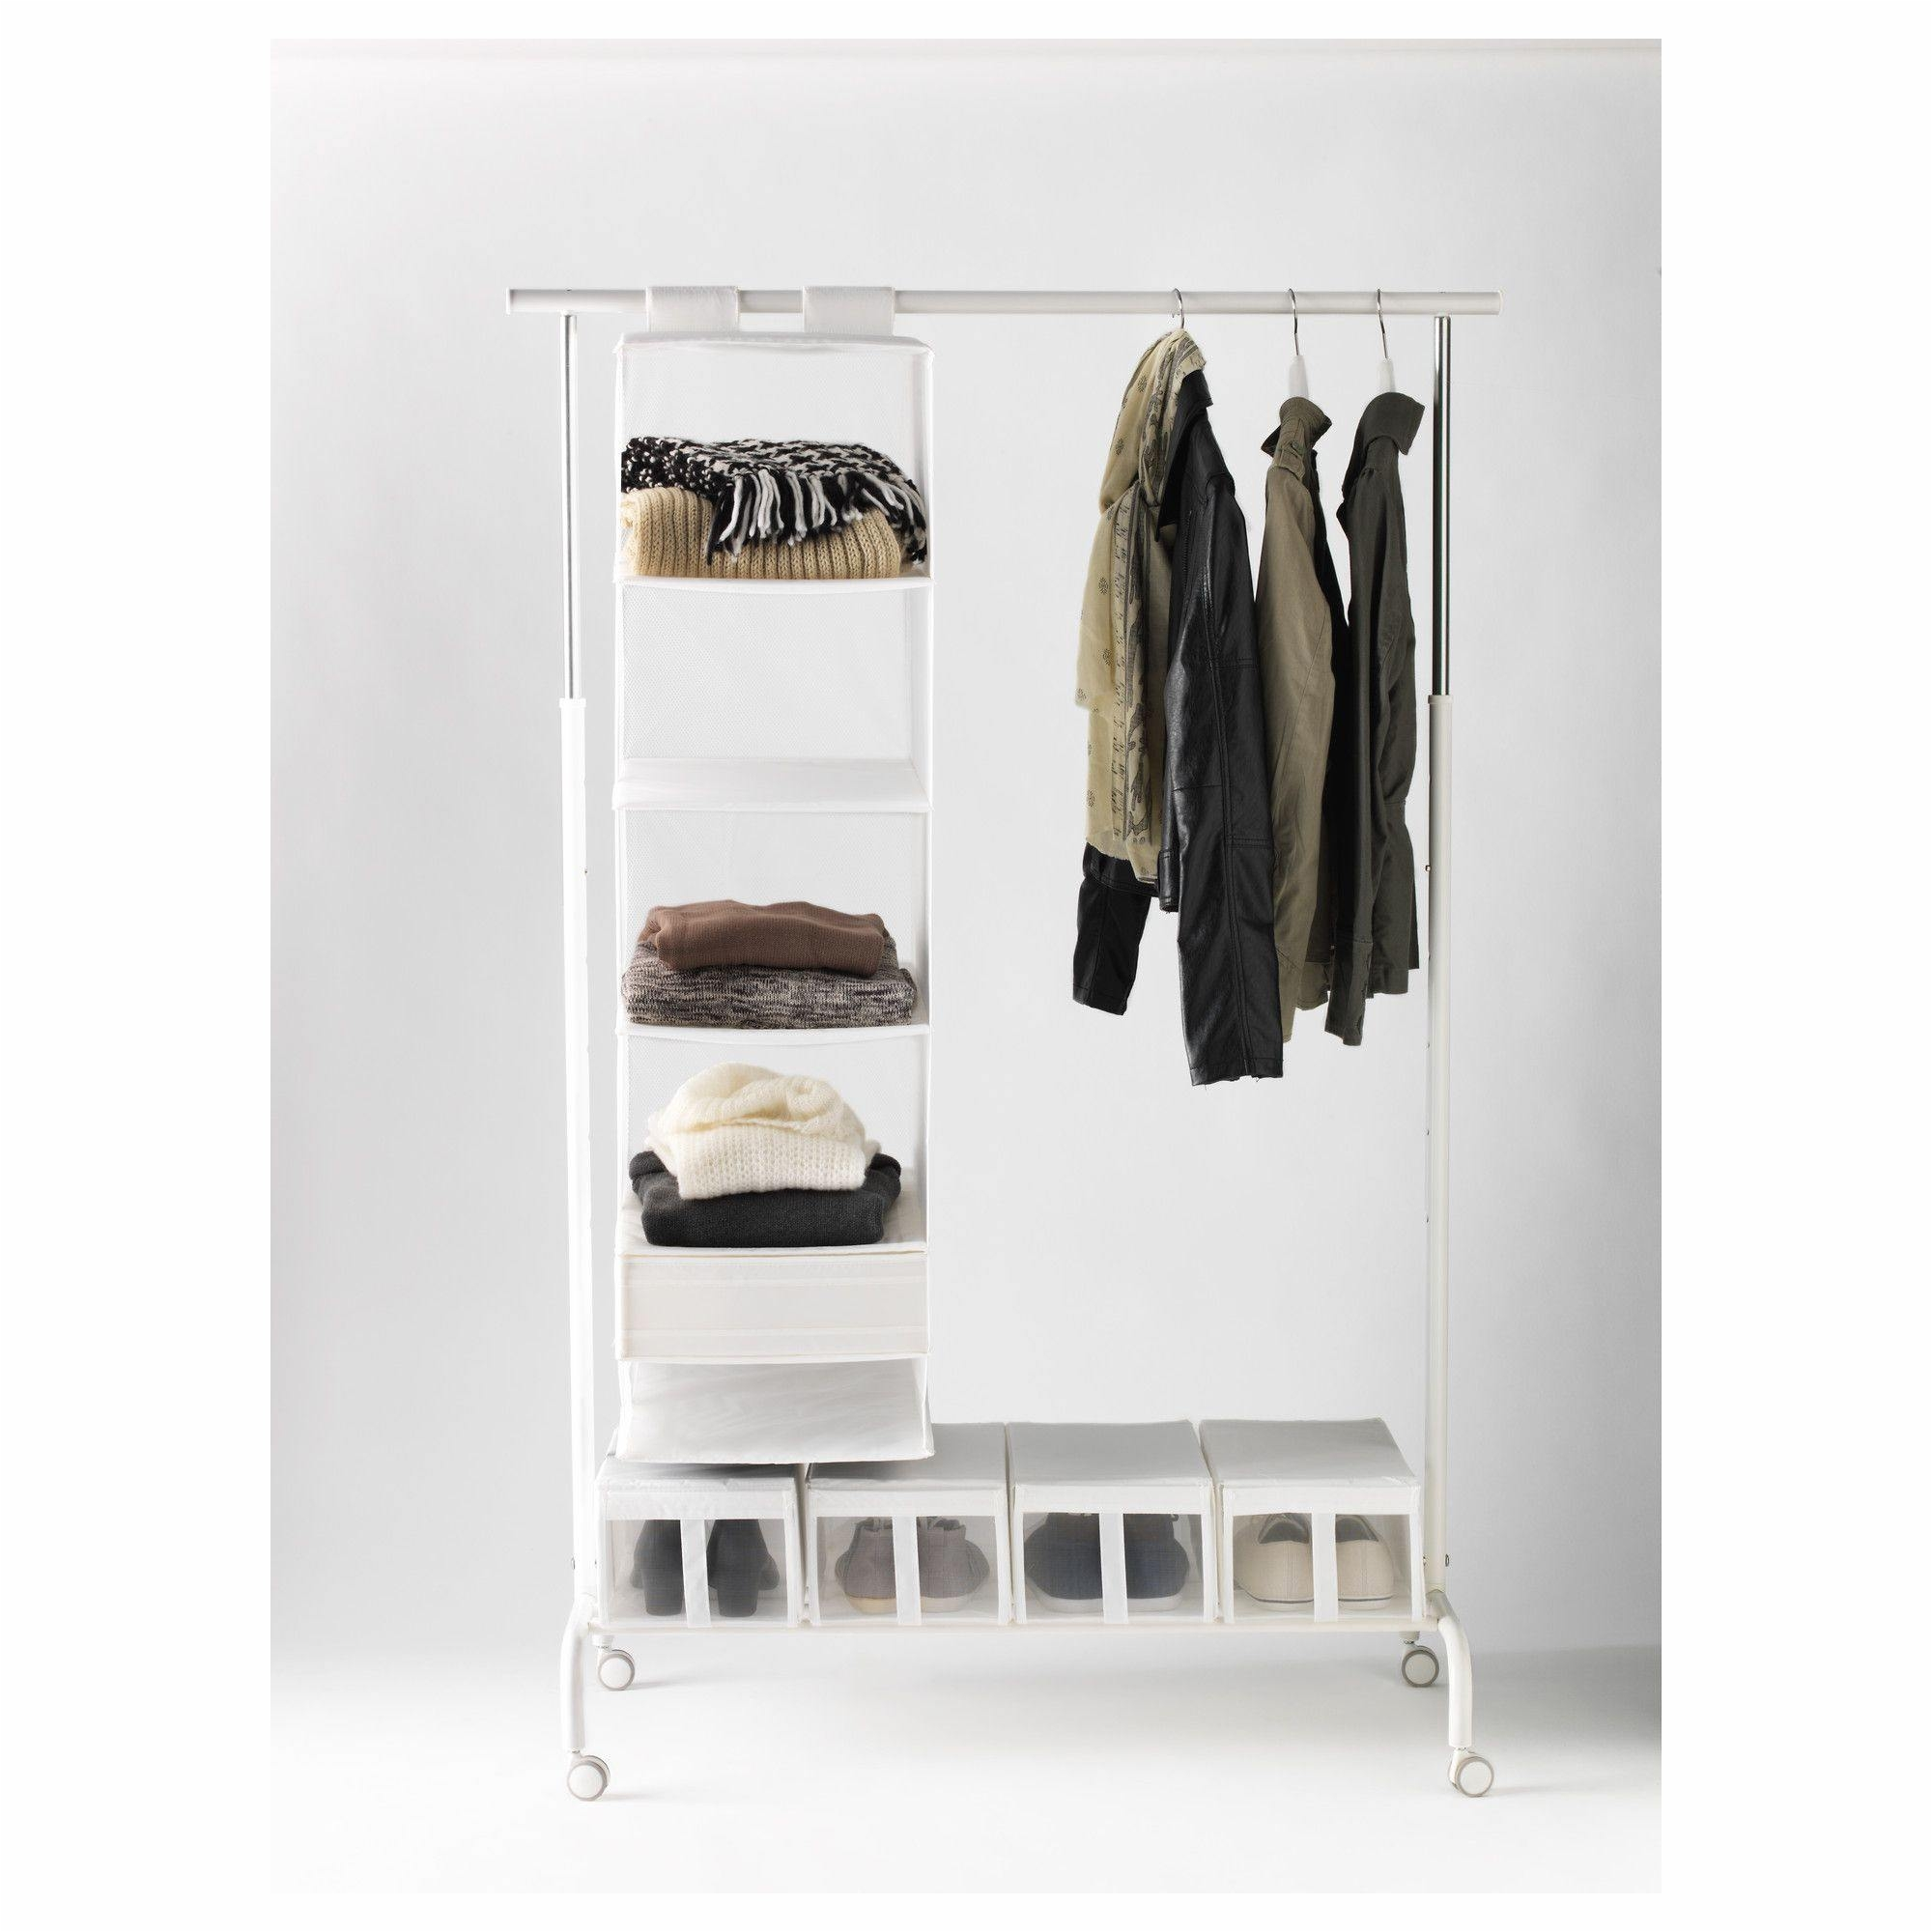 Ikea Cloth Rack 24 Ikea Cloths Rack Useful Turbo Clothes Rack In Outdoor Black Pe